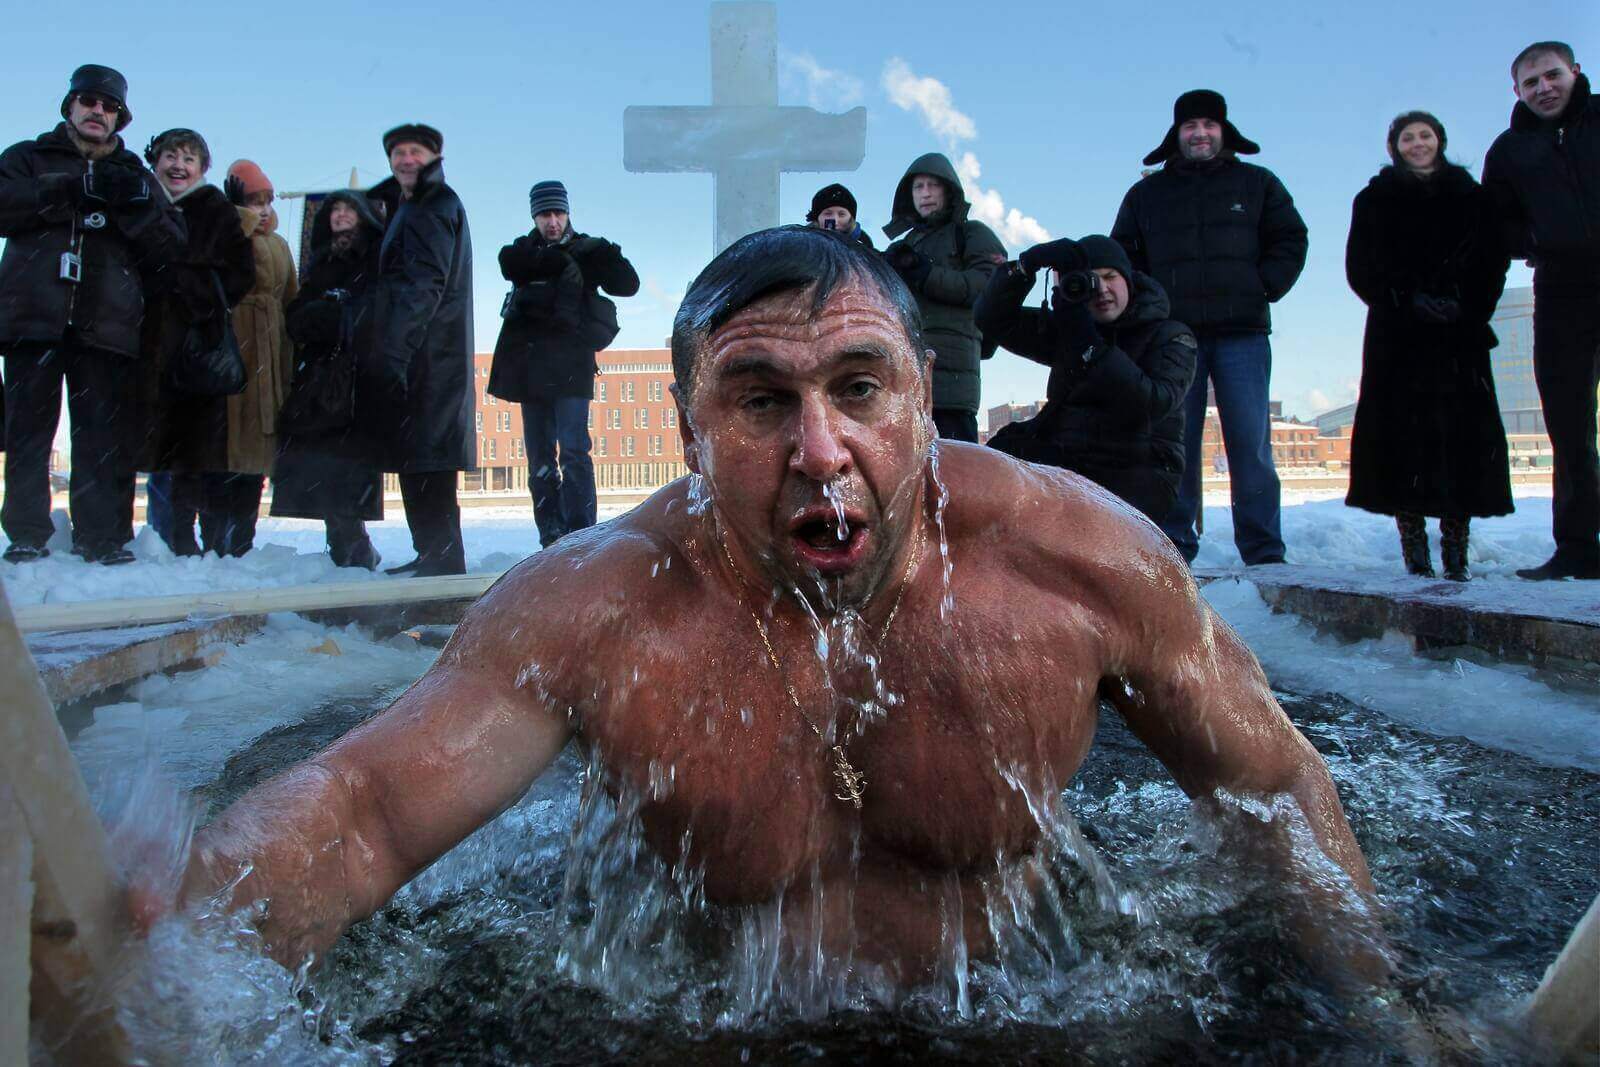 Street Photography from the heart of Russia from Alexander Petrosyan 2